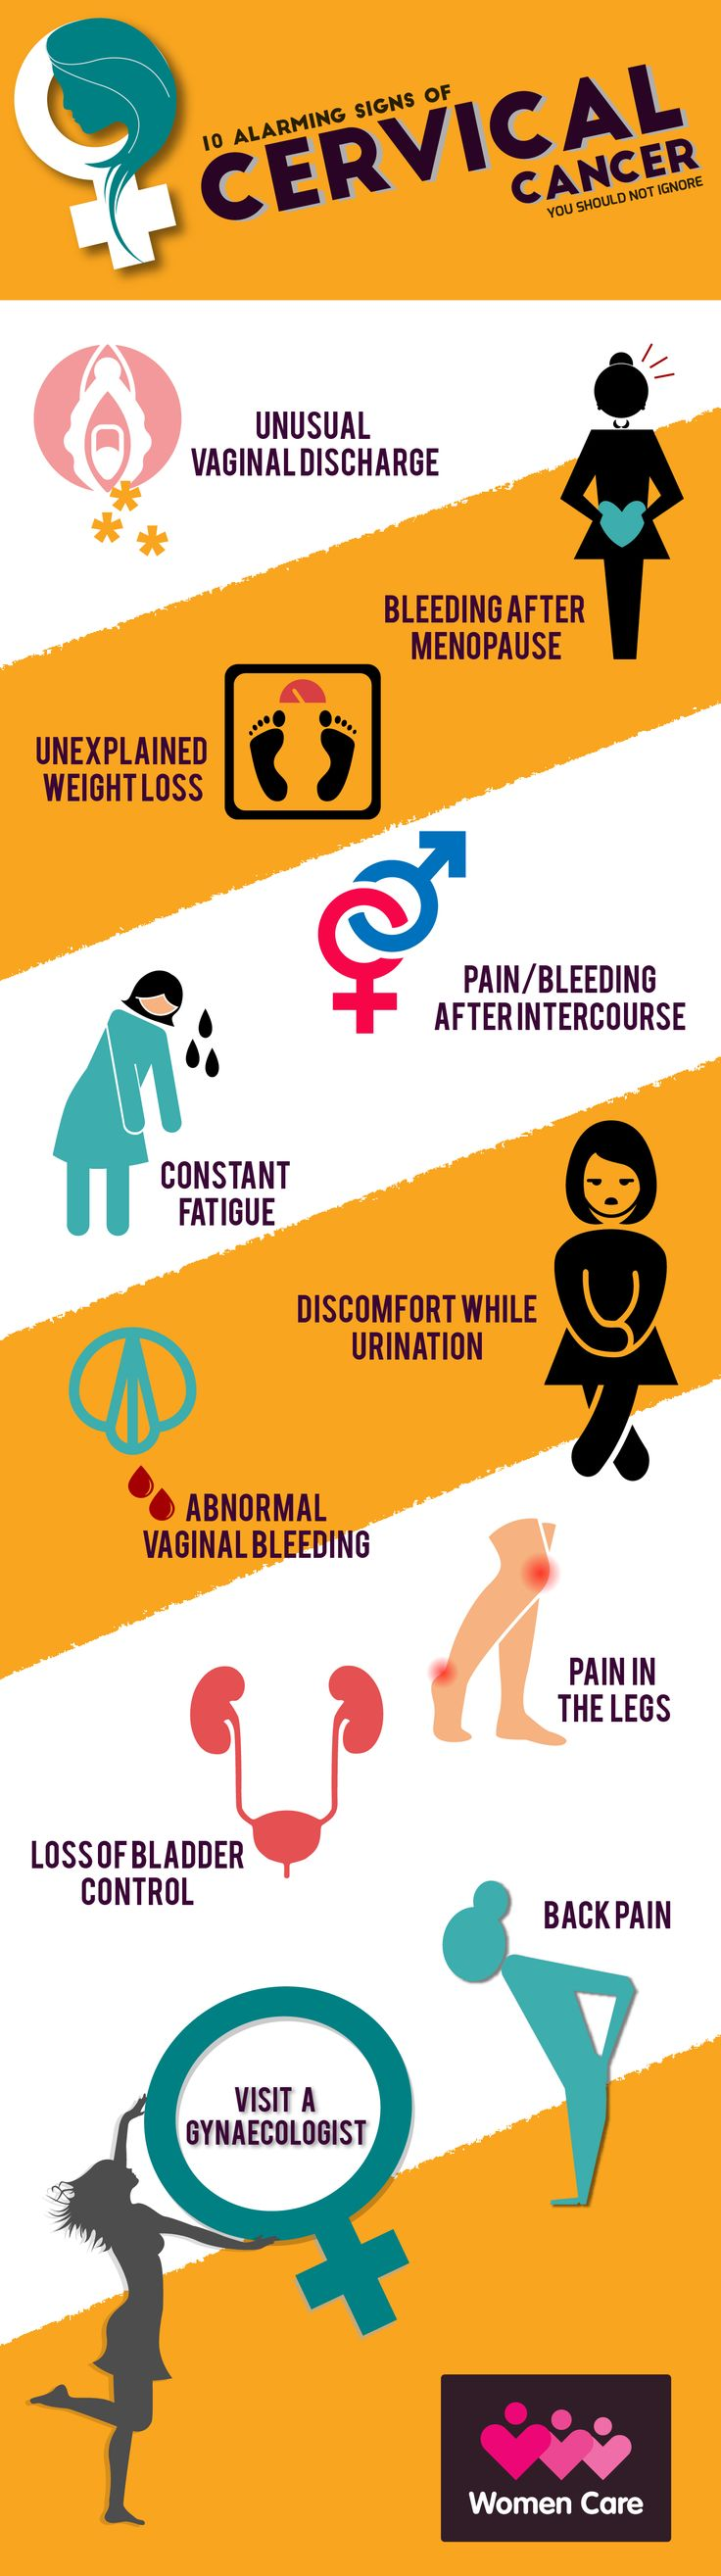 10 alarming signs you might have cervical cancer.  If you are facing any of these, do not ignore them, they may be symptoms of cervical cancer. Visit your gynecologist to know more.